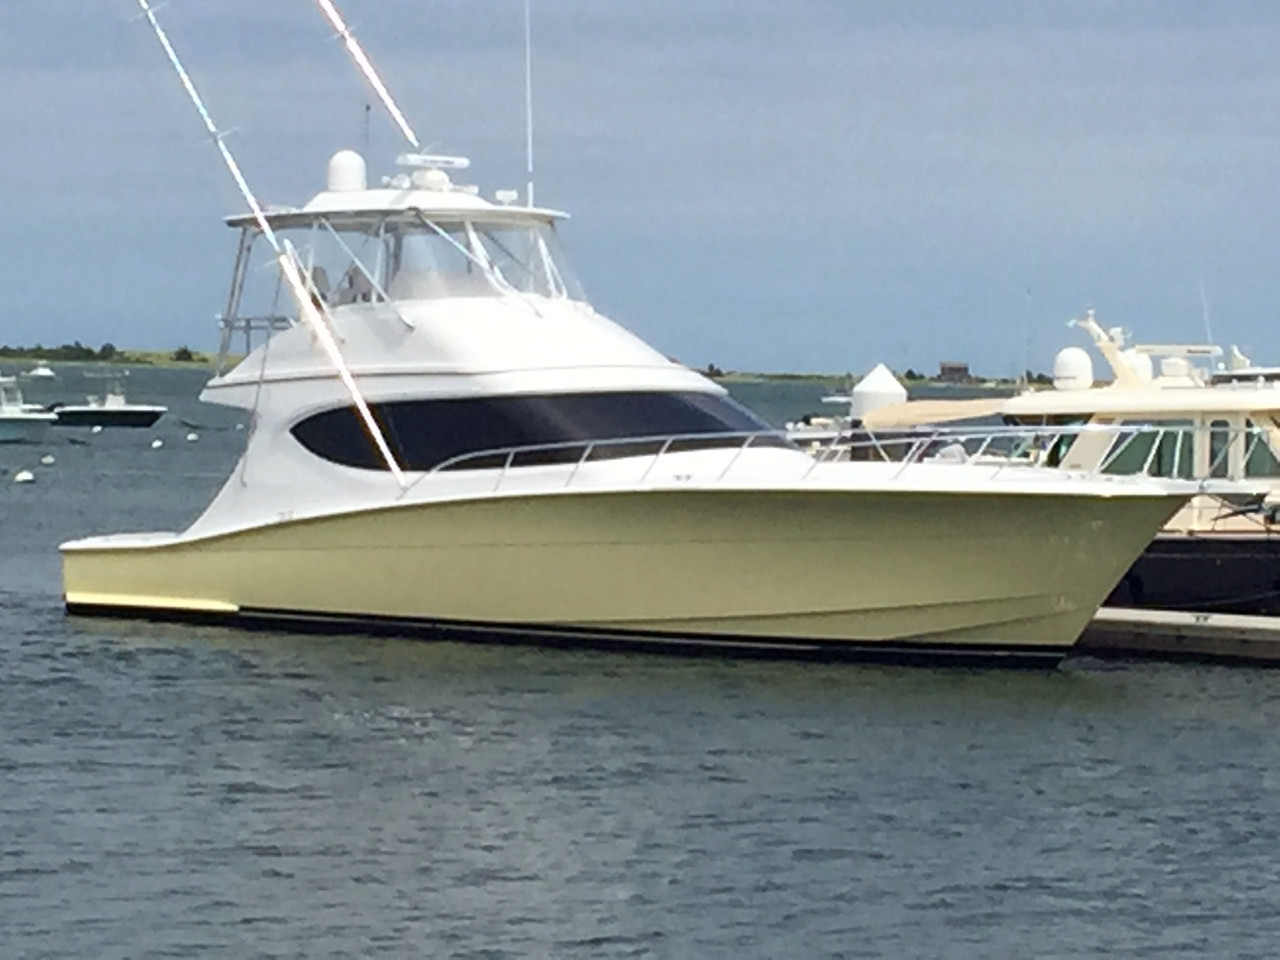 2013 used hatteras gt54 convertible fishing boat for sale for Hatteras fishing boat